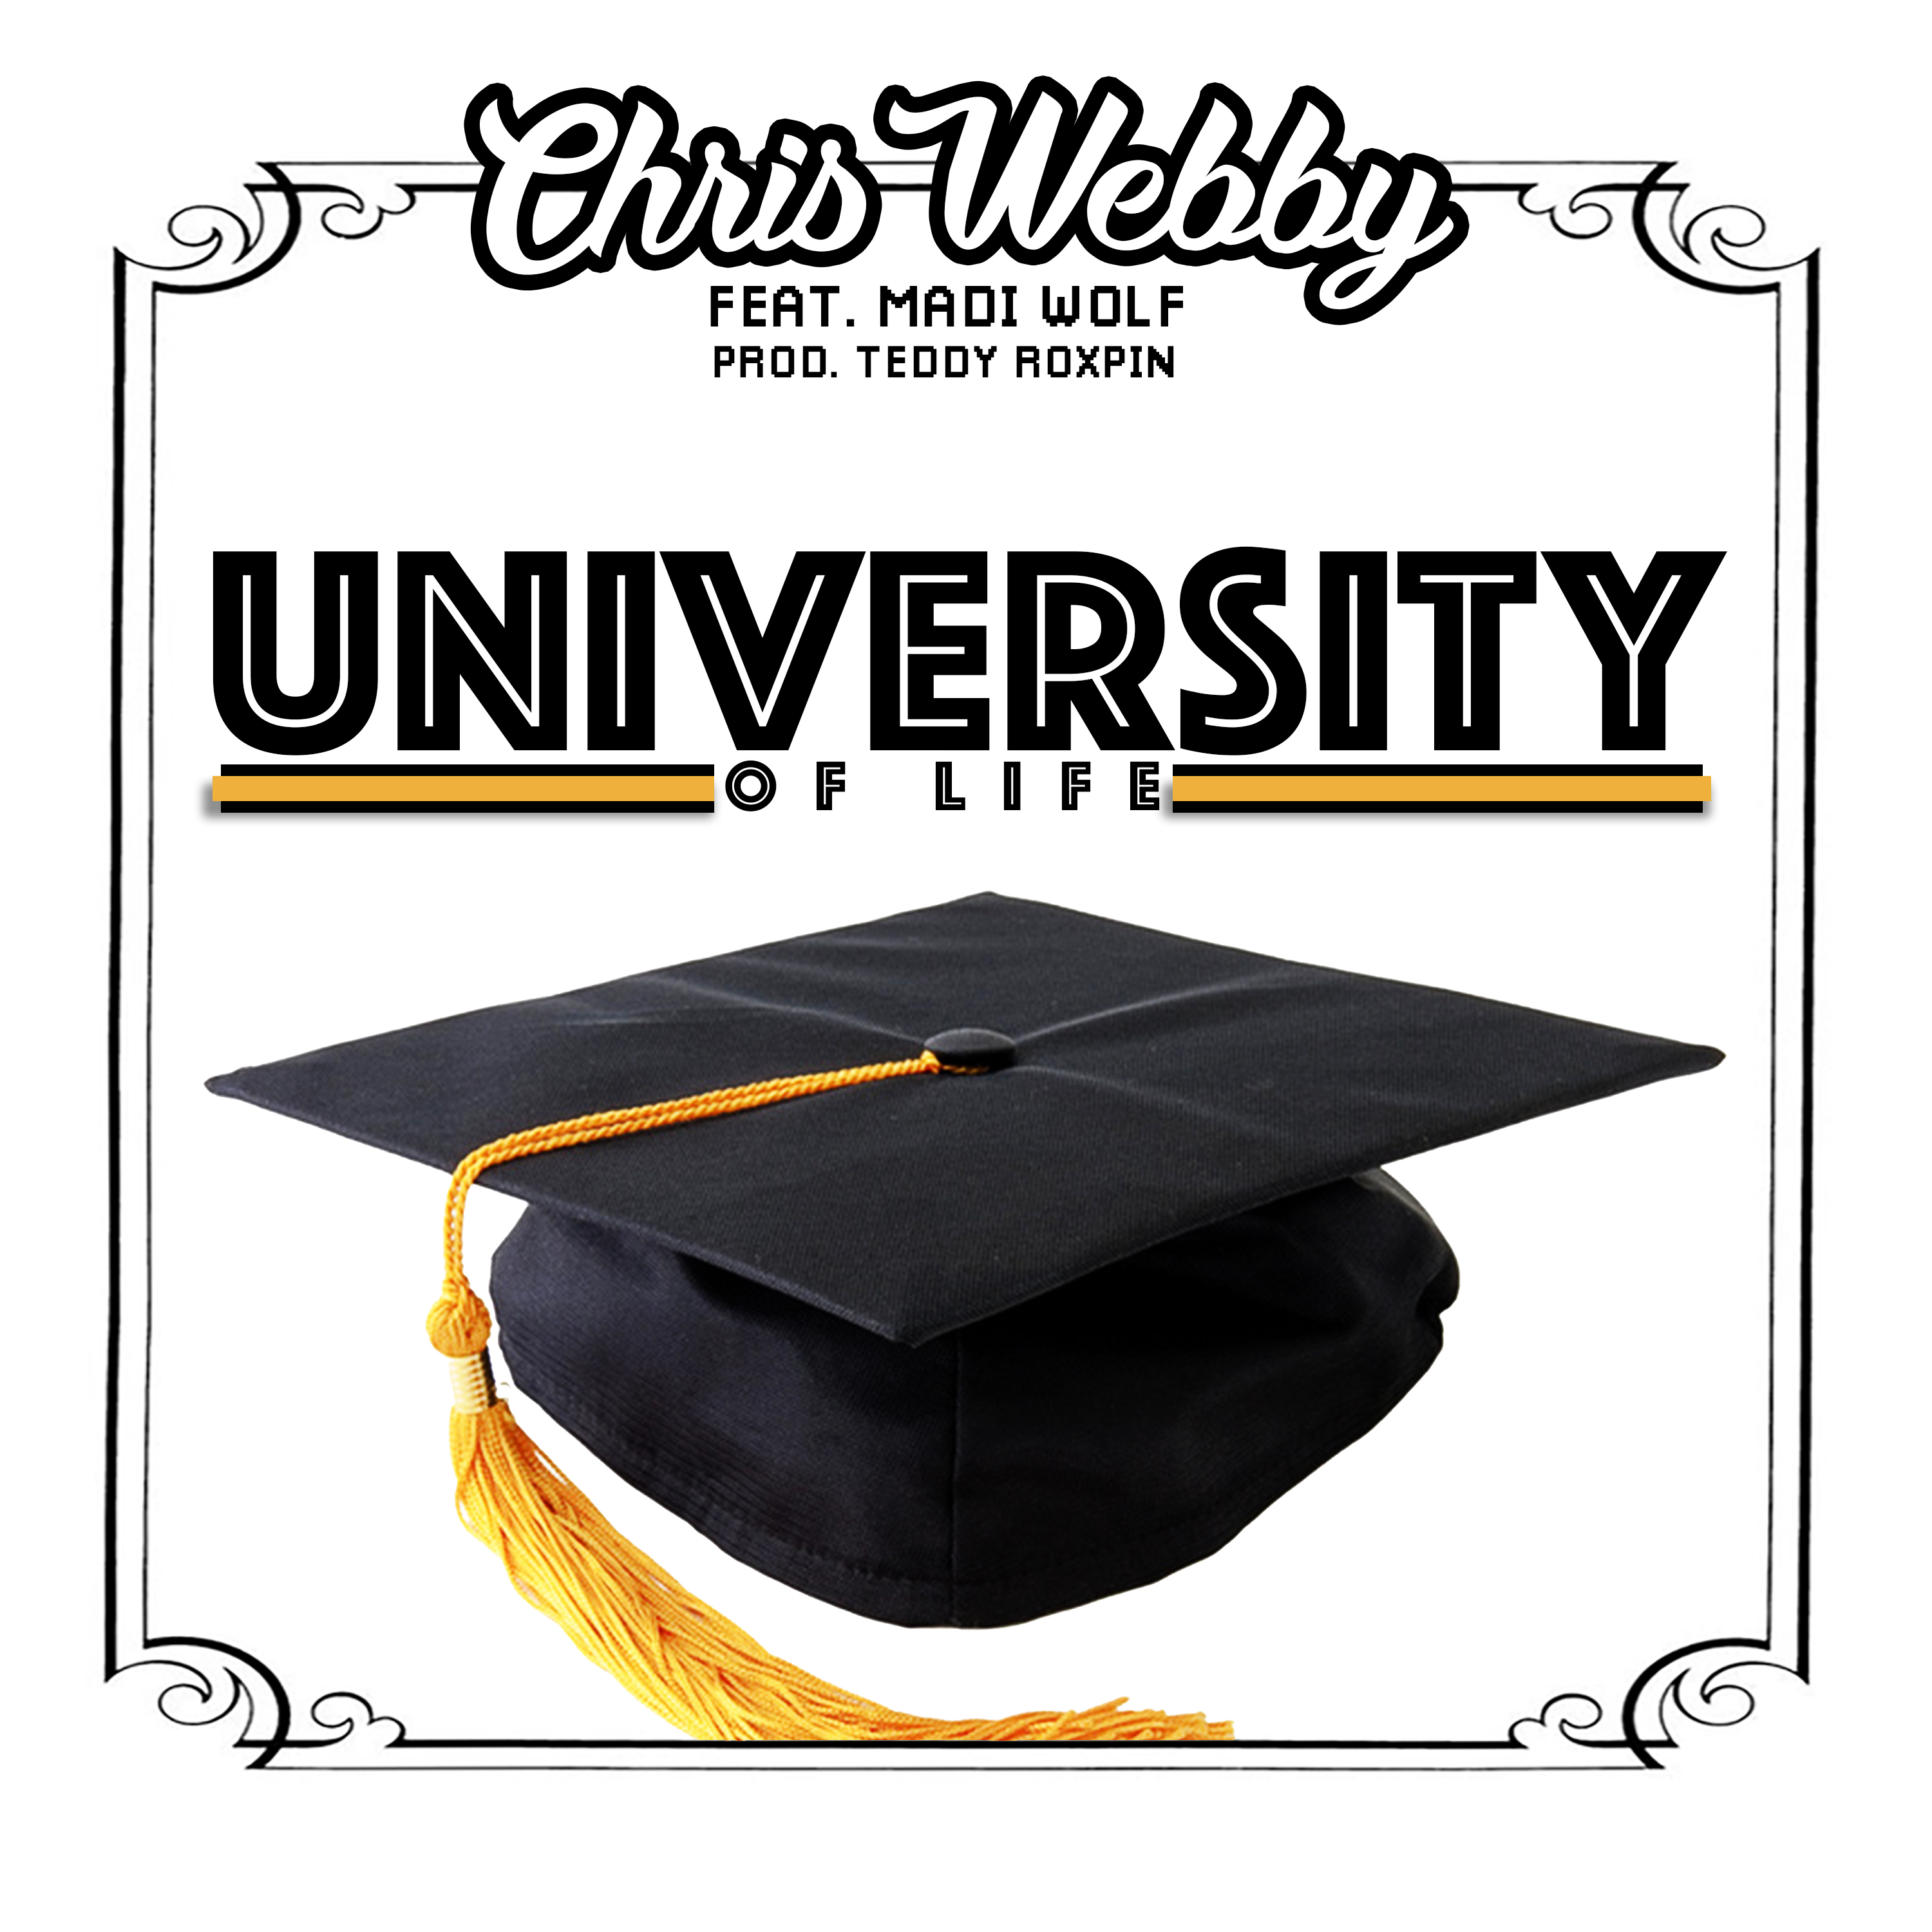 "New Music: Chris Webby – ""University of Life"" (Feat. Madi Wolf)"